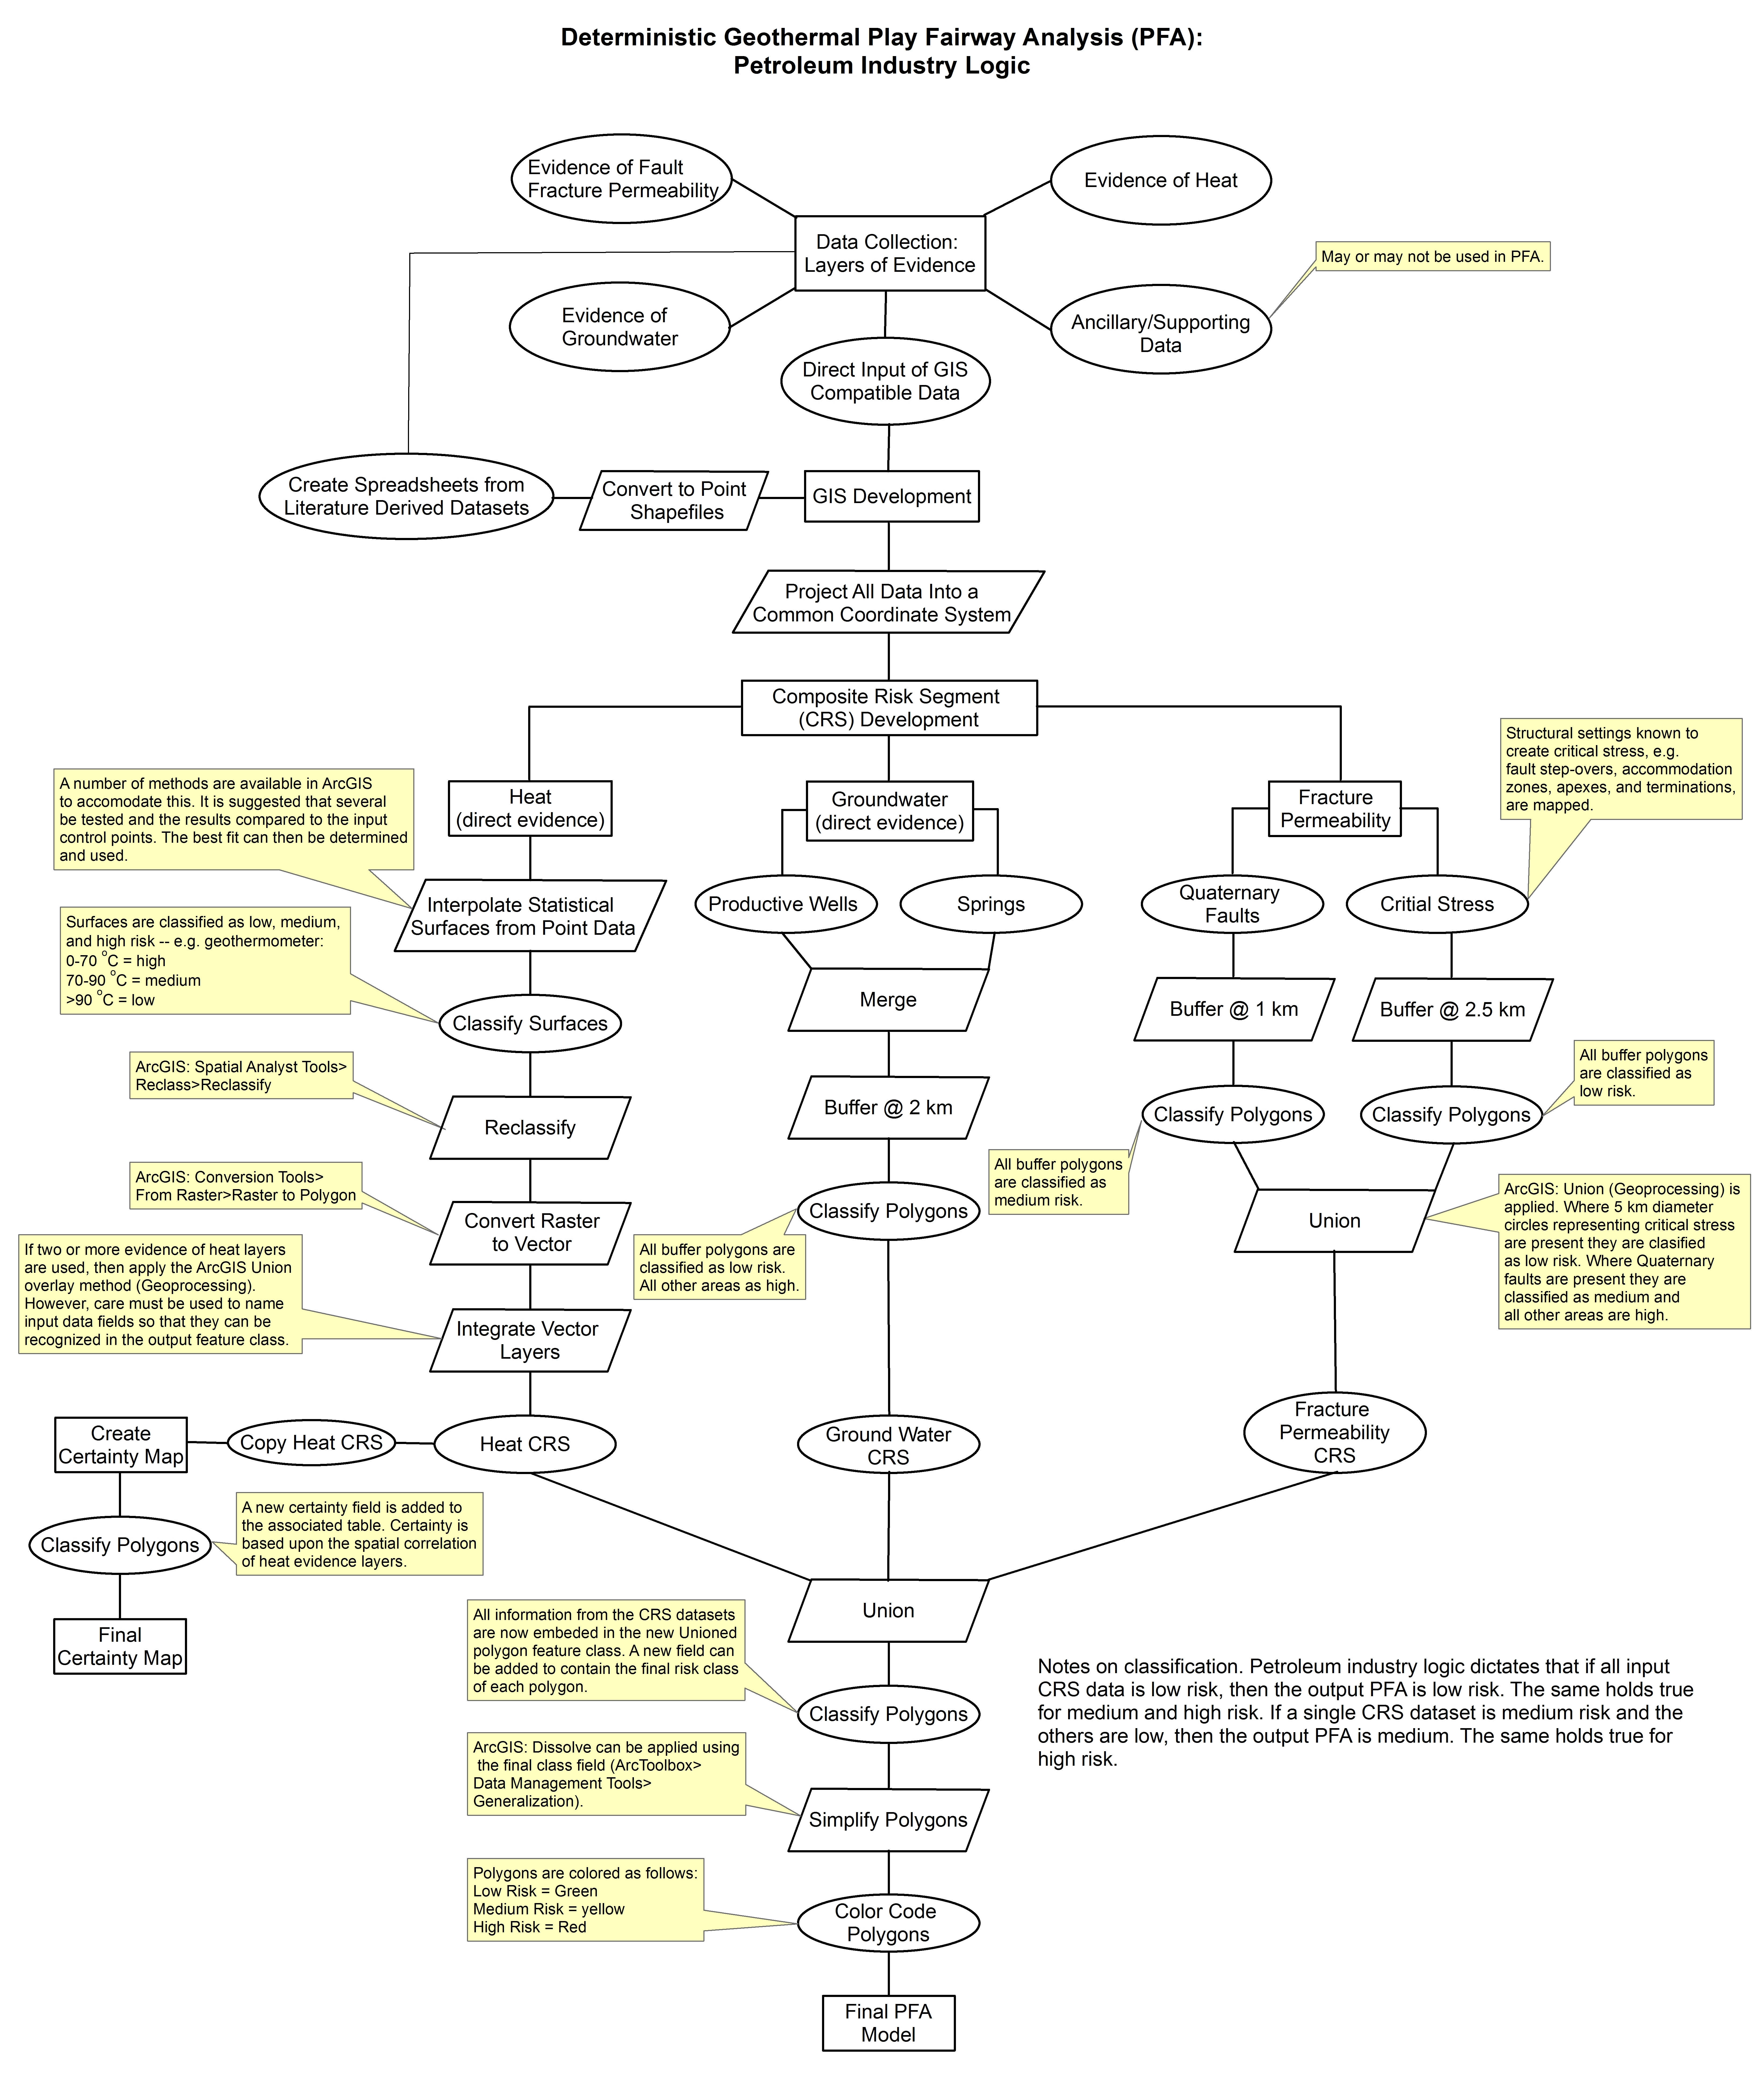 Gdr tularosa basin play fairway analysis methodology flow charts deterministic pfa methodologyg 560 mb chart comprehensive methodology used in the creation of a deterministic geothermal play fairway analysis nvjuhfo Image collections